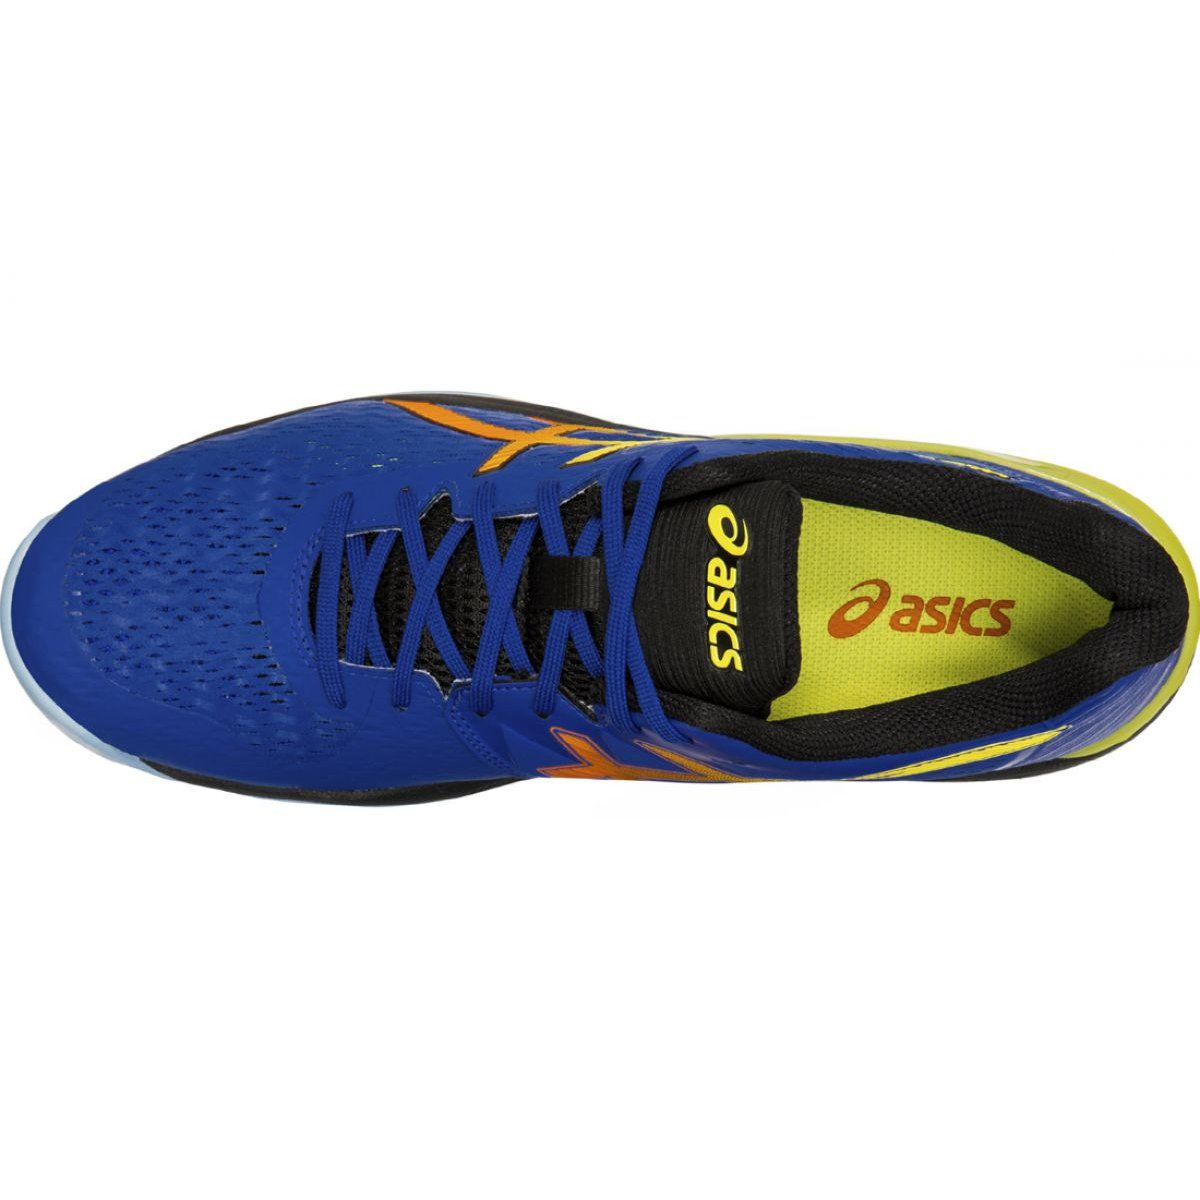 Buty Asics Sky Elite Ff M 1051a031 400 Granatowe Granatowe Asics Shoes Volleyball Shoes